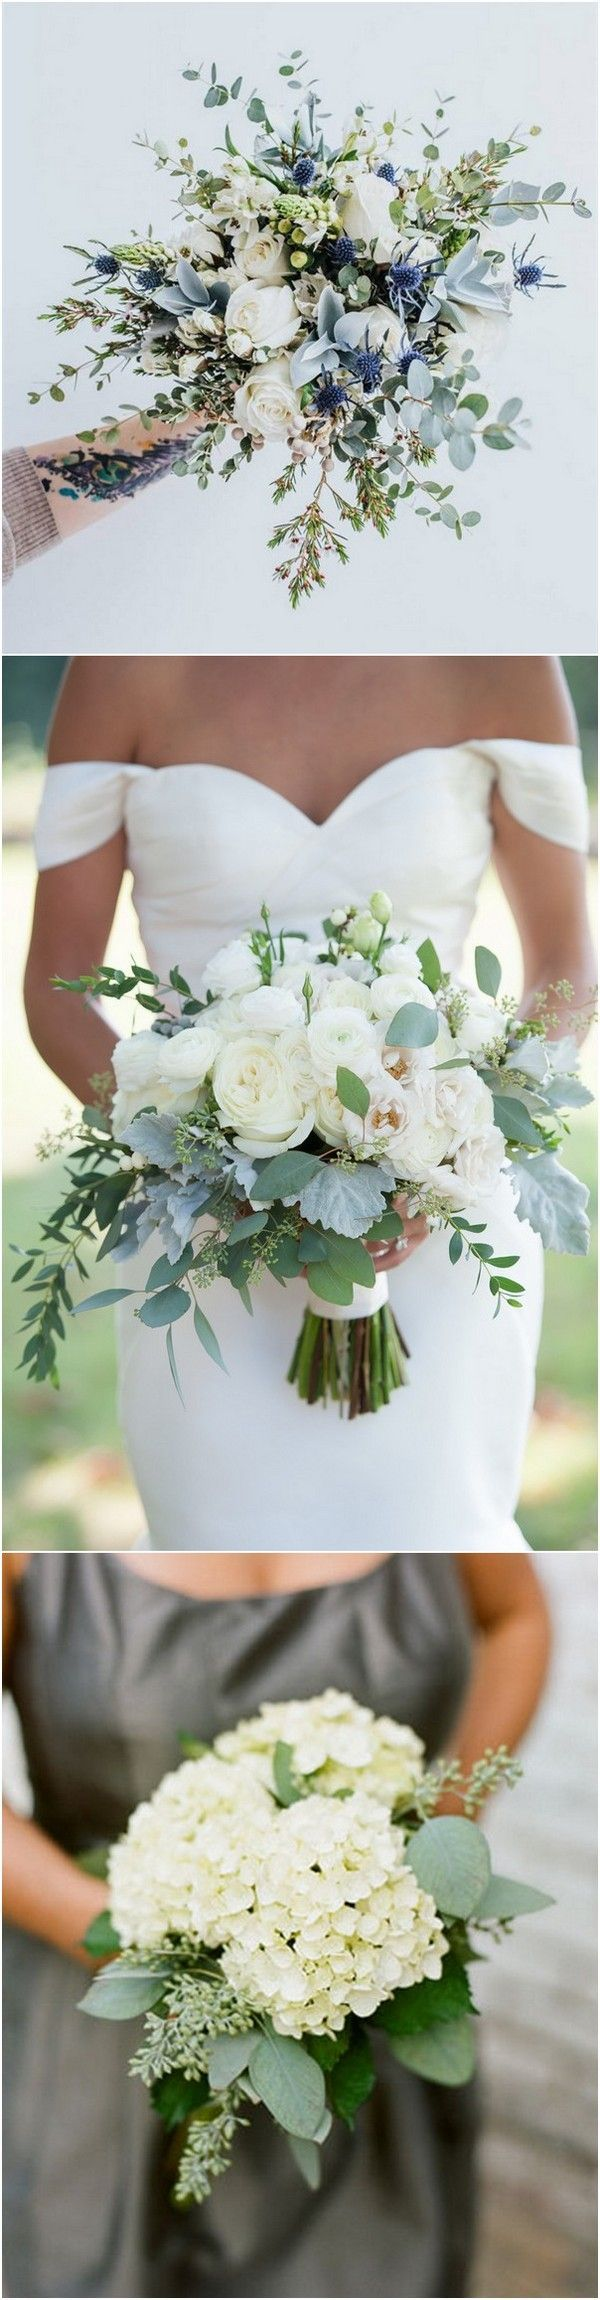 25 swoon worthy spring amp summer wedding bouquets tulle amp chantilly - Top 10 White And Green Wedding Bouquet Ideas You Ll Love